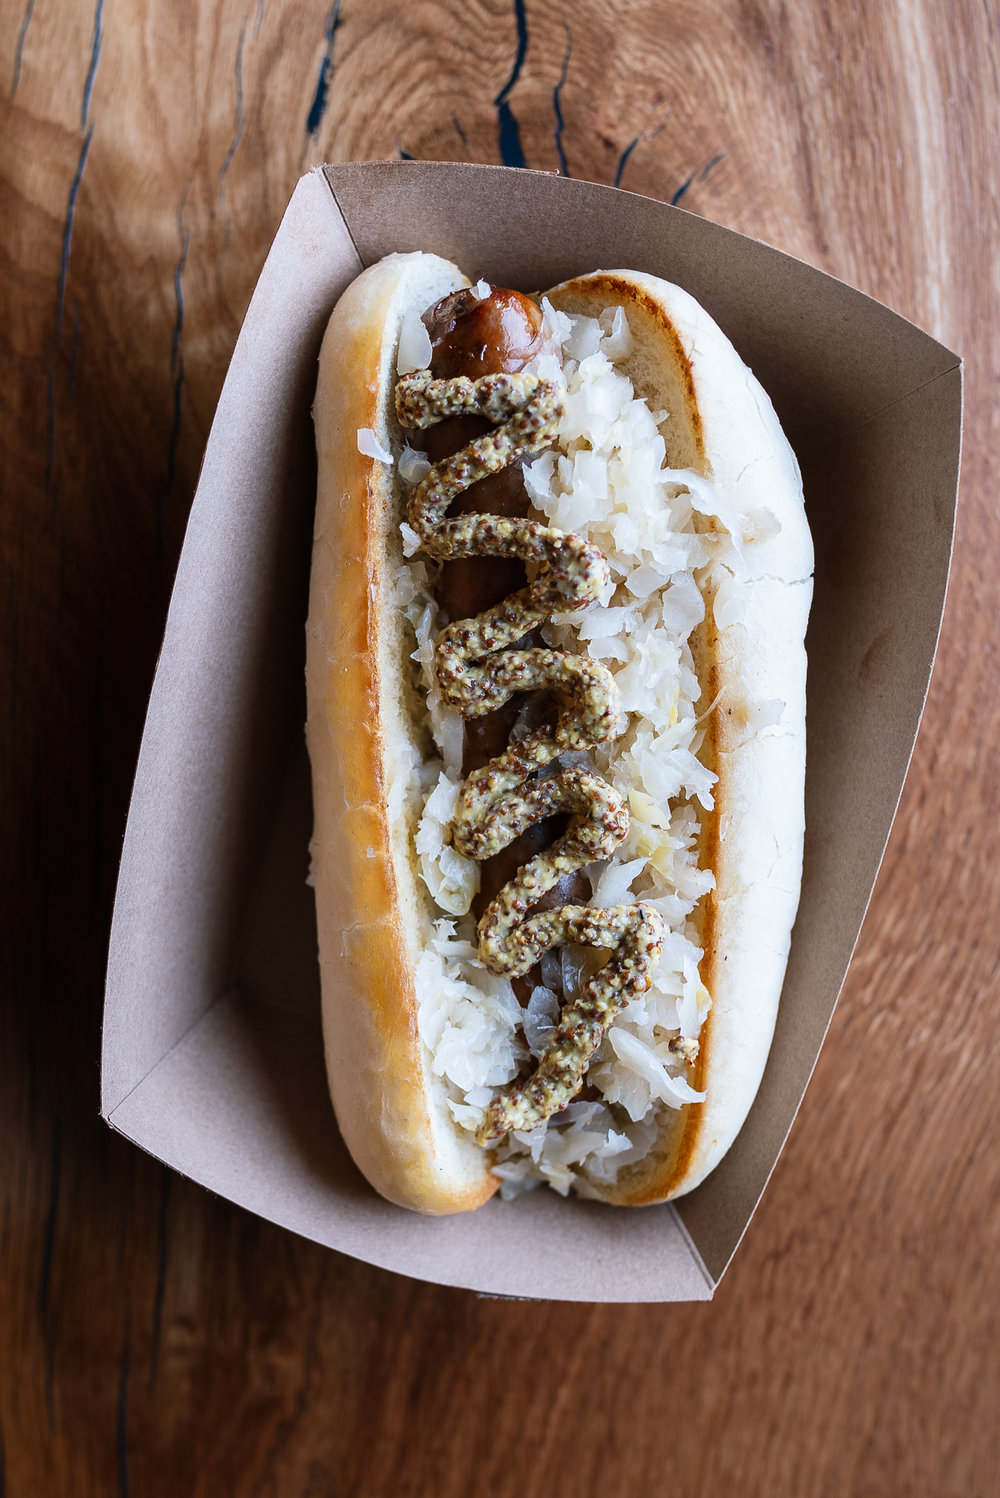 Beer brat - sauerkraut, whole grain mustard